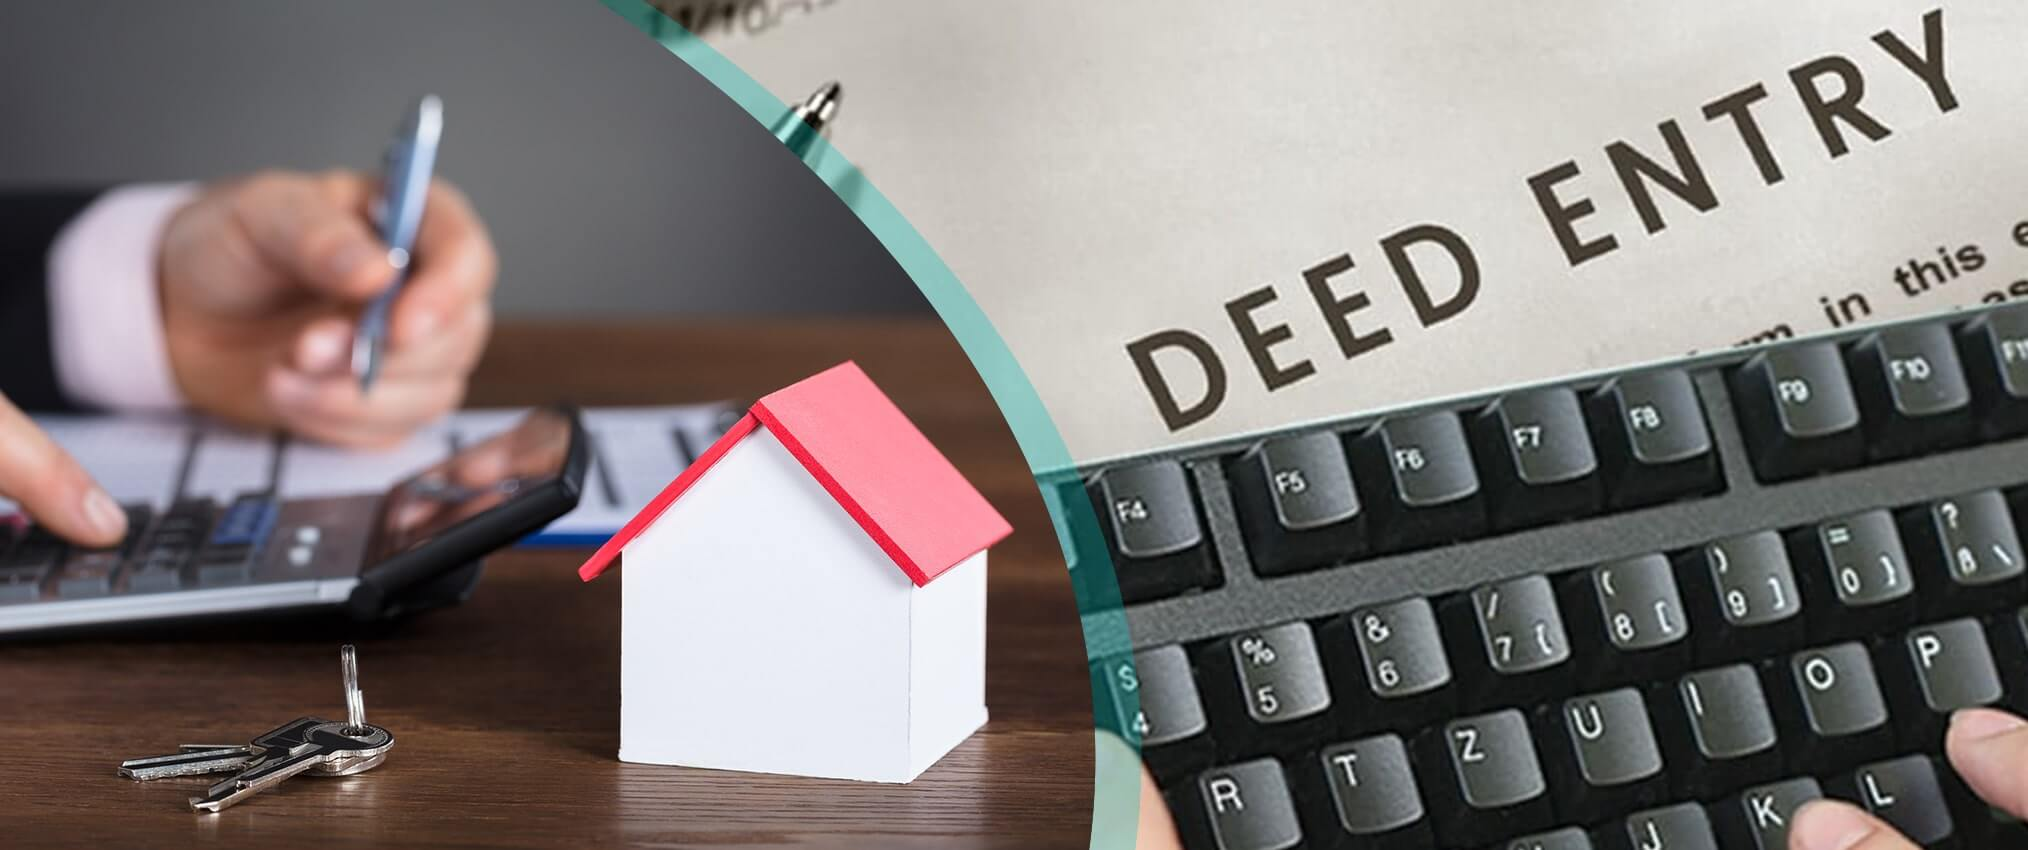 deed entry service